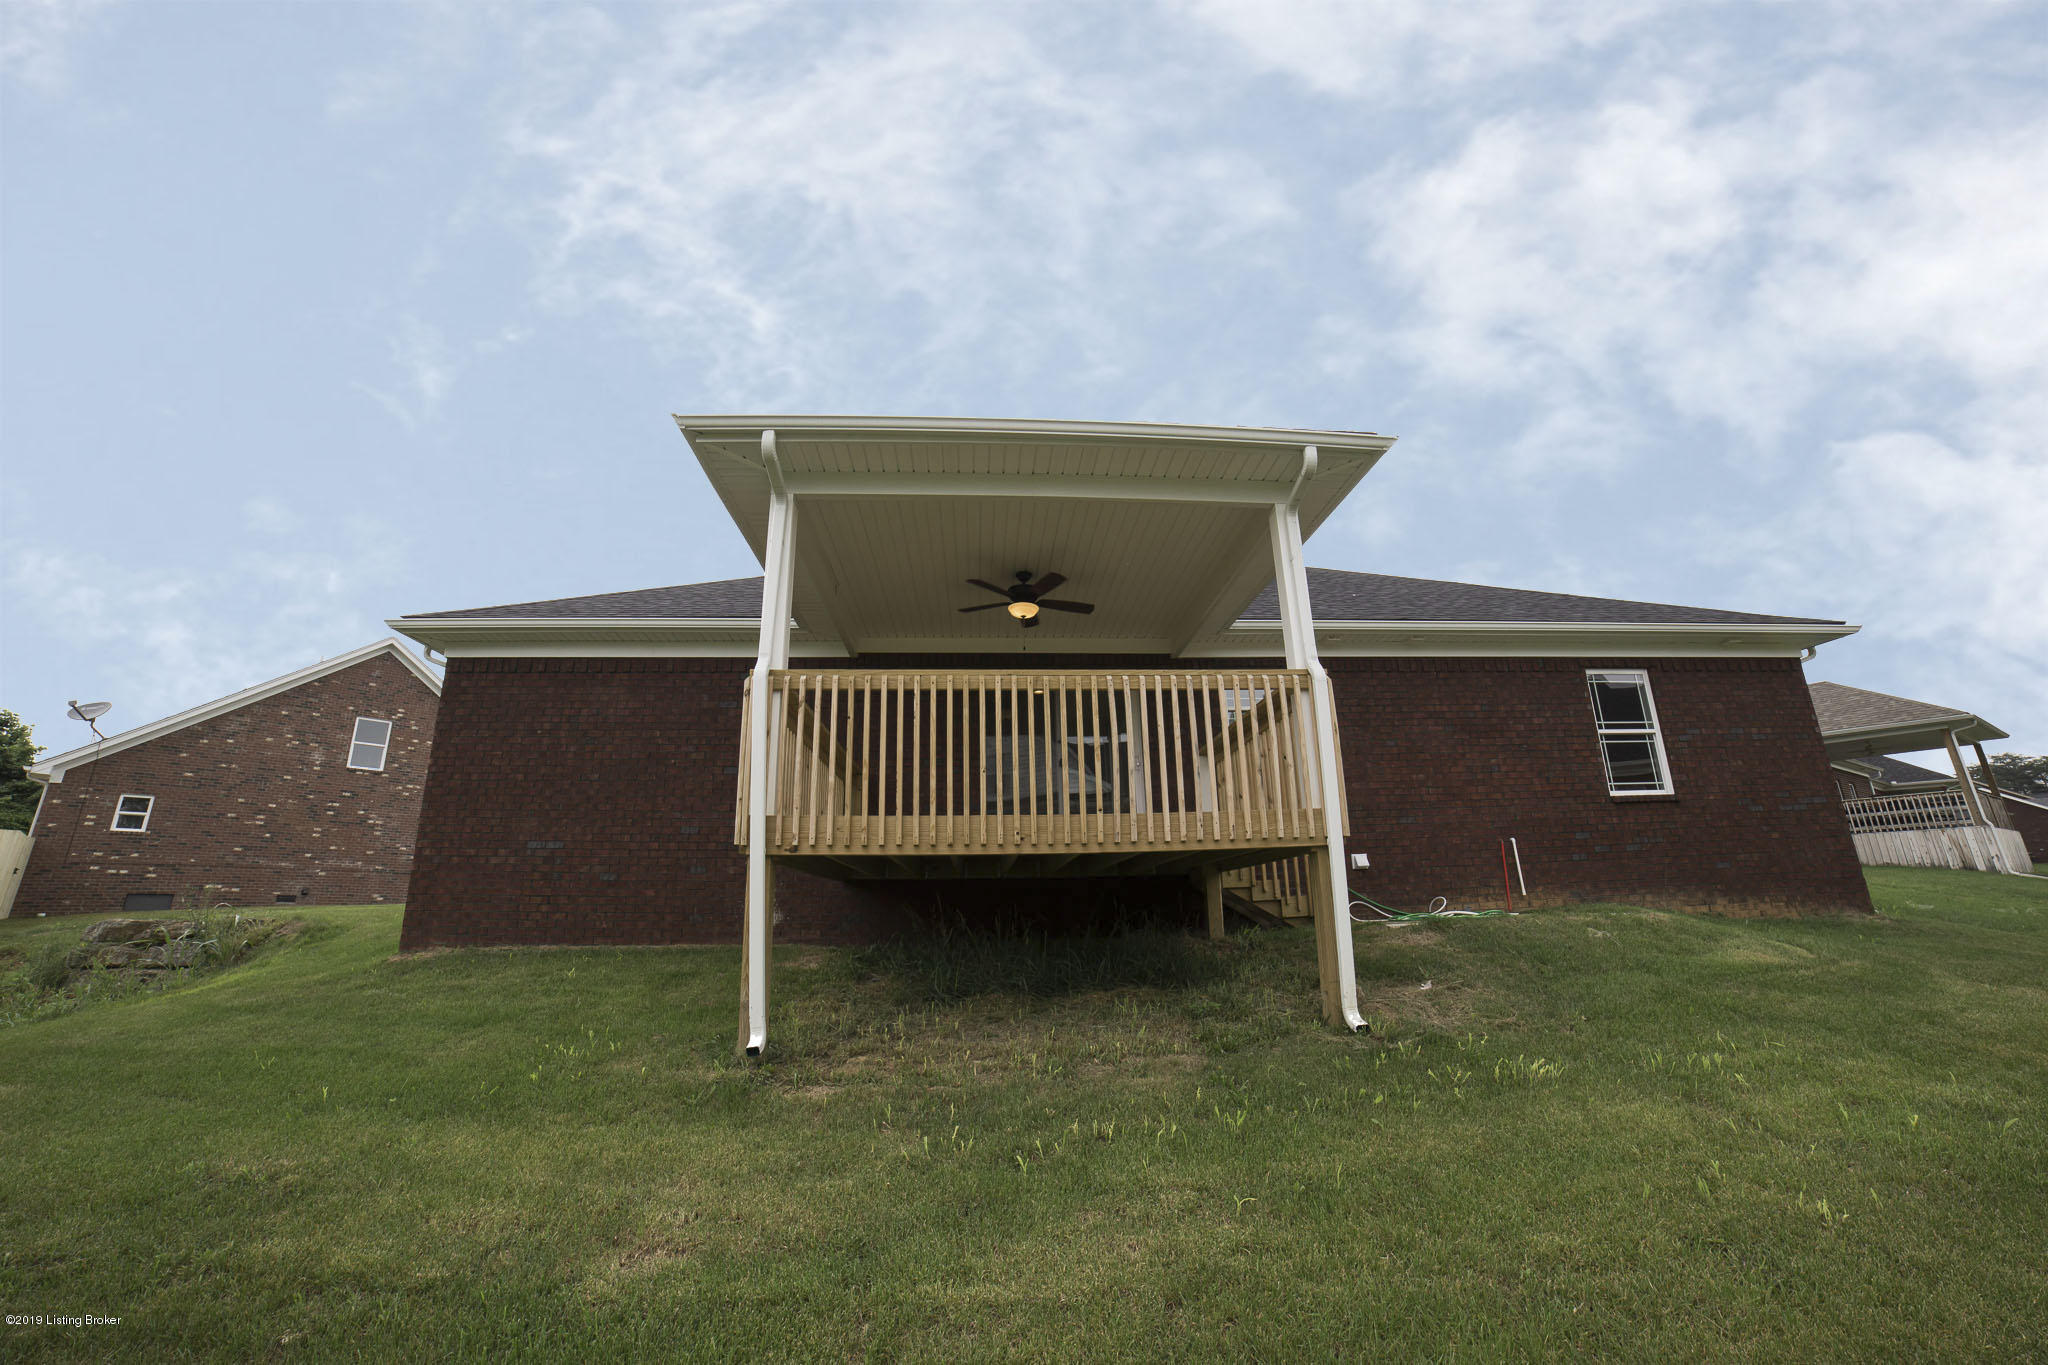 338 London Square, Mt Washington, Kentucky 40047, 4 Bedrooms Bedrooms, 8 Rooms Rooms,3 BathroomsBathrooms,Residential,For Sale,London,1532610